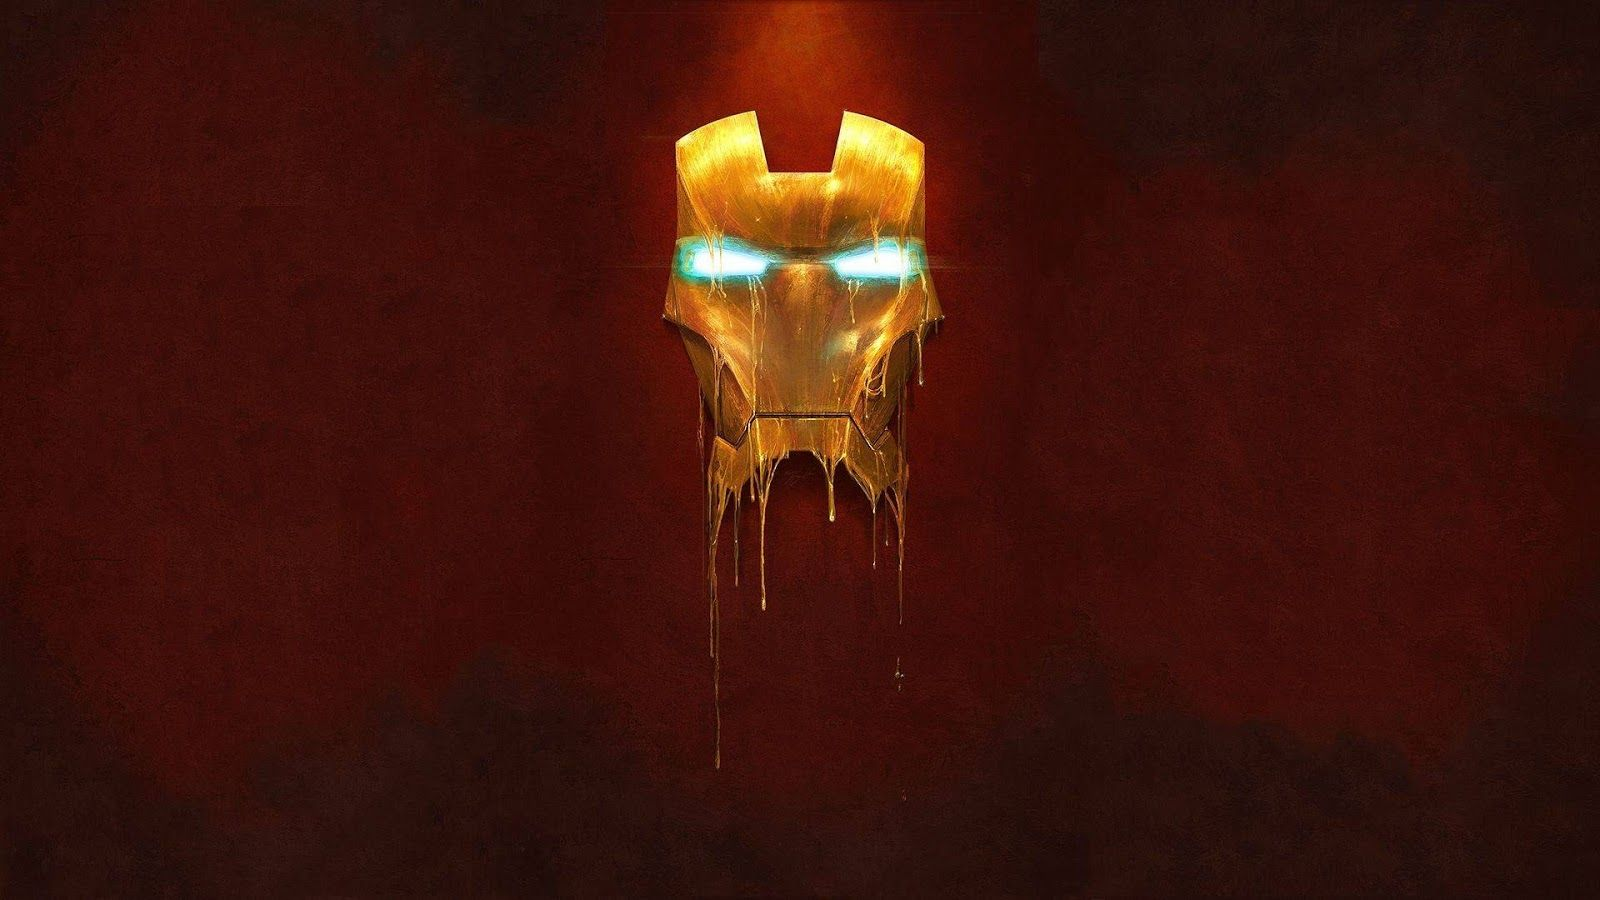 Iron Man Hd Wallpaper: Iron Man HD Wallpapers P HD Wallpapers High